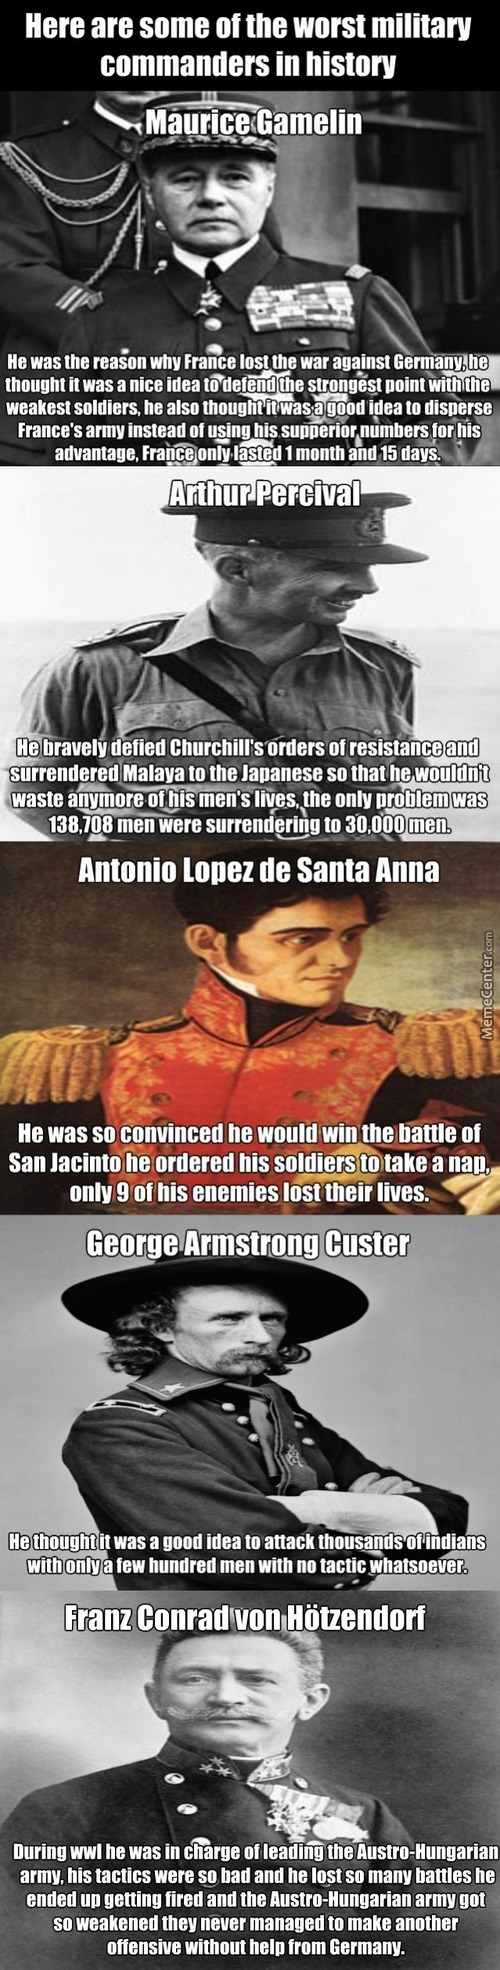 Some Of The Worst Military Commanders In History.